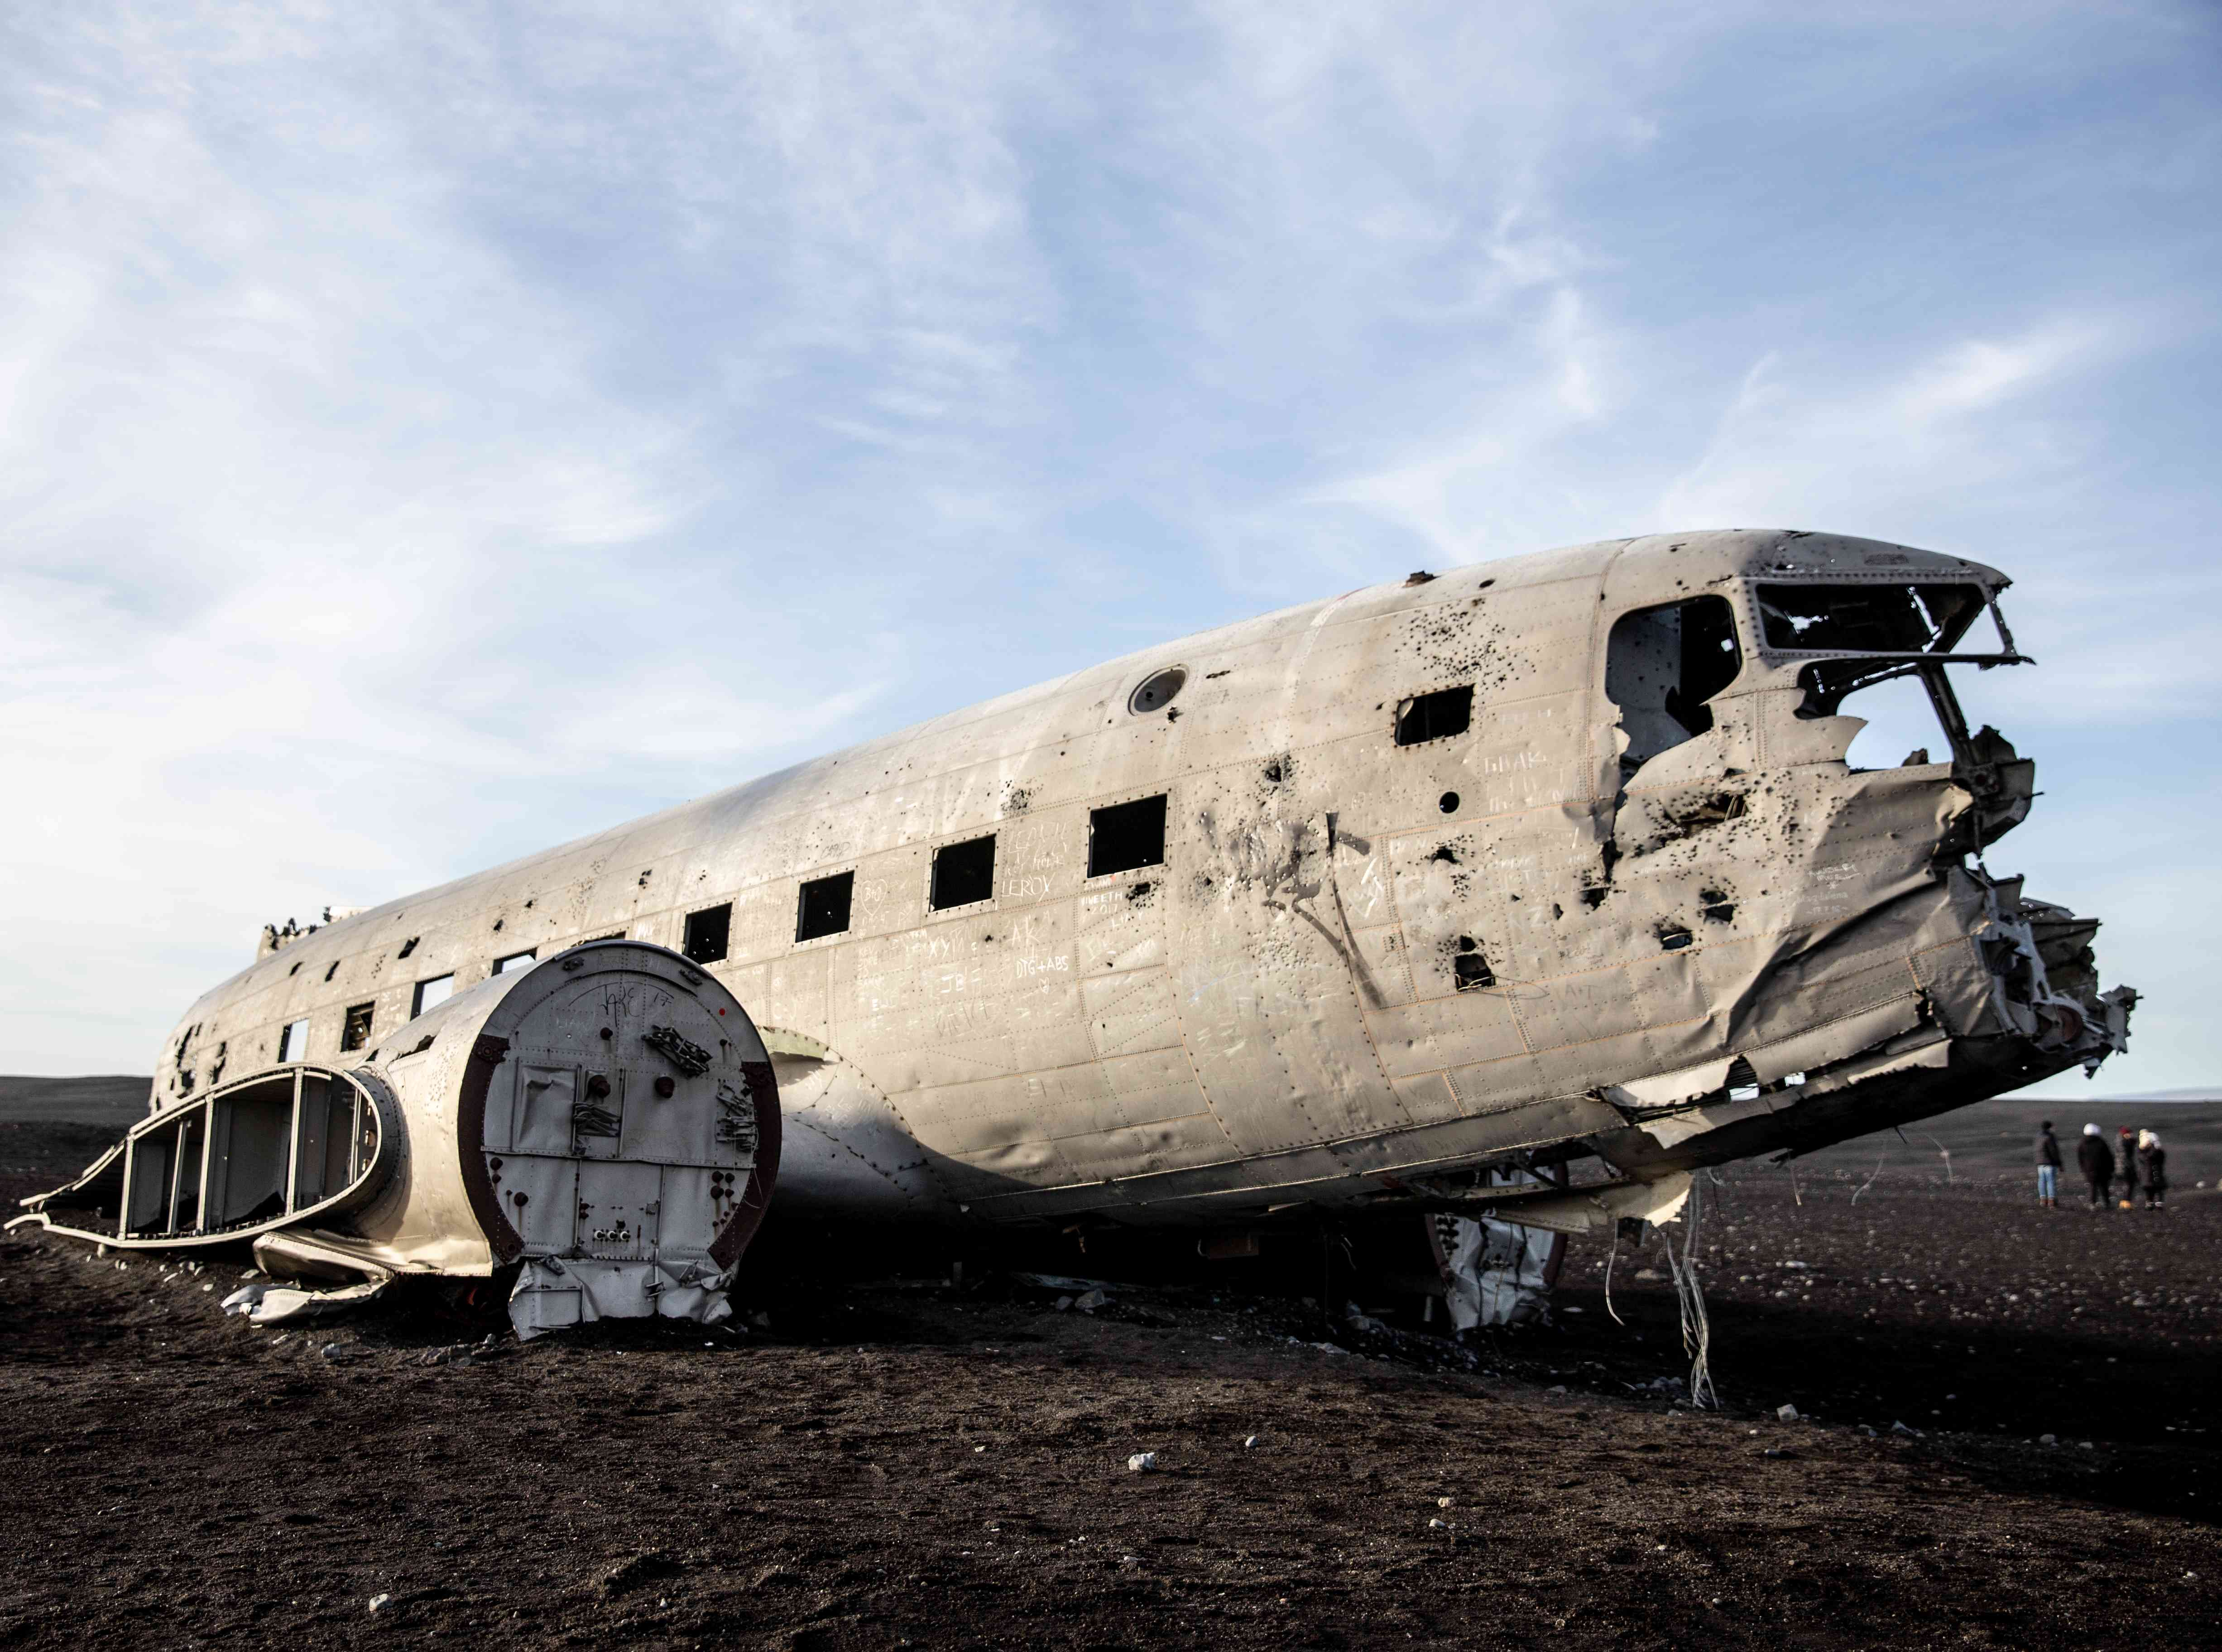 Abandoned plane in Iceland